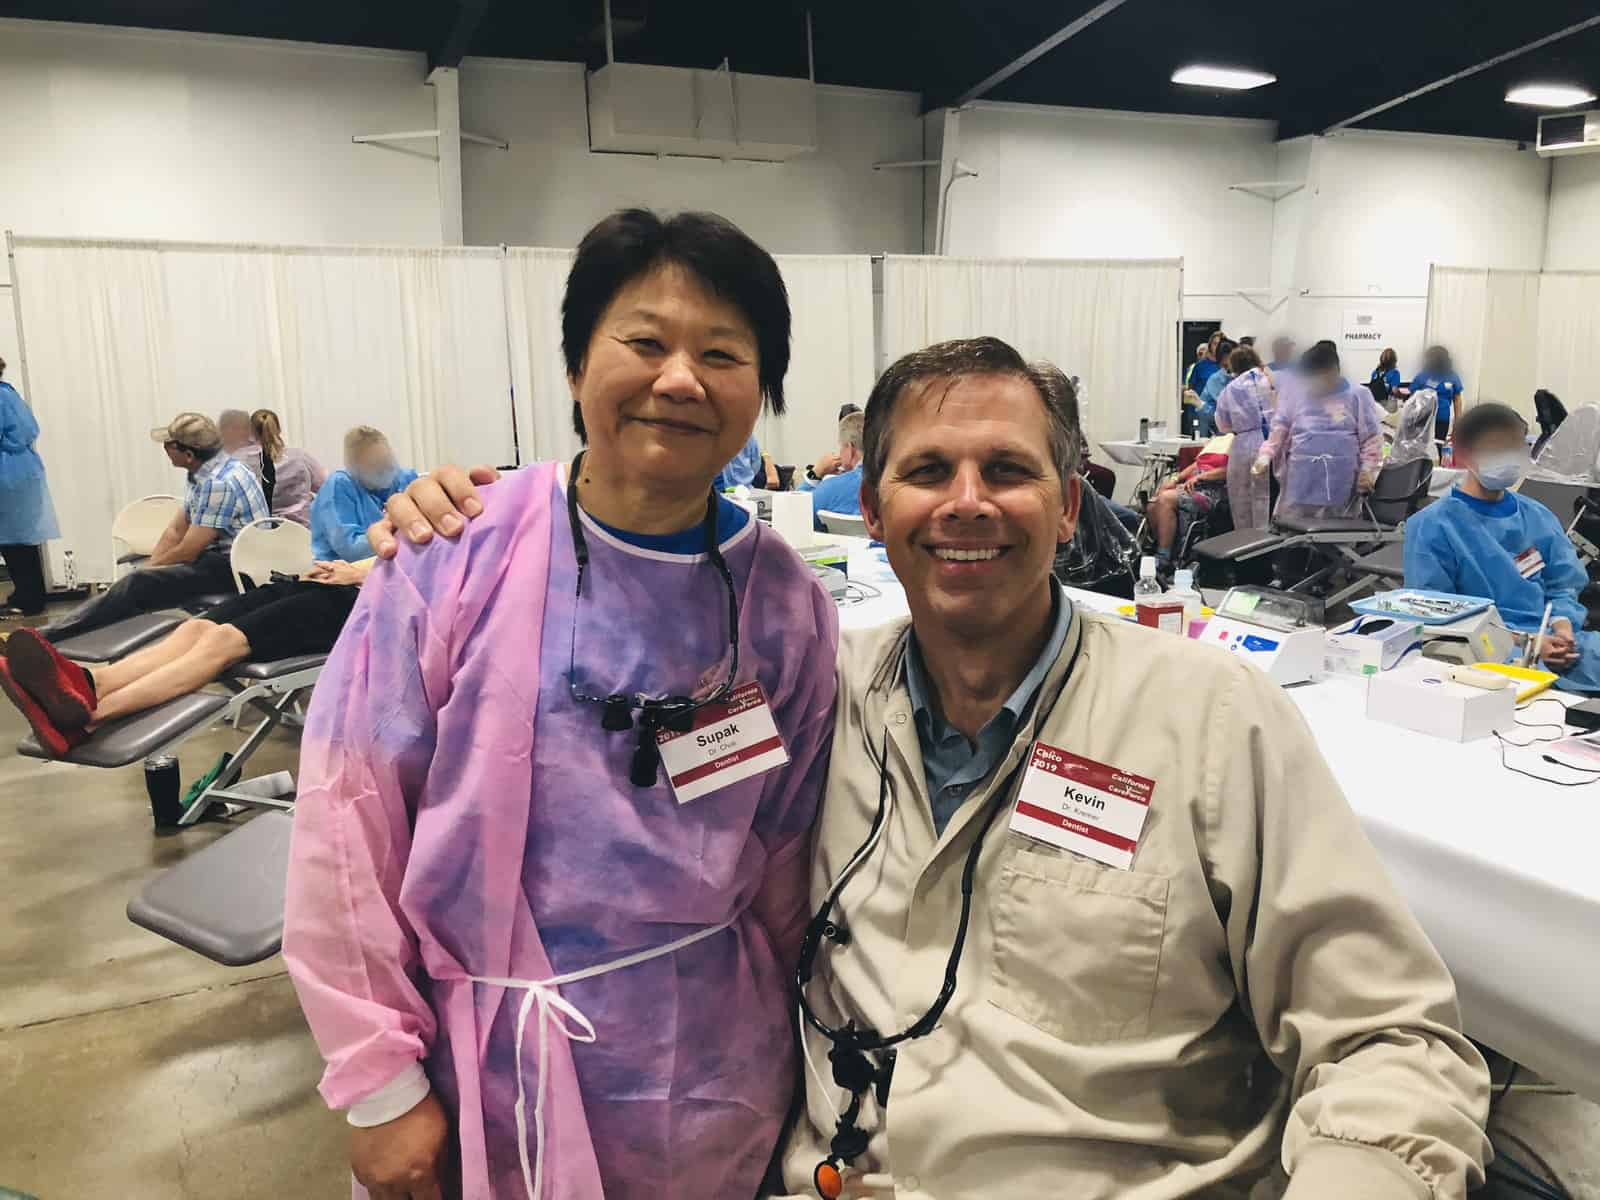 Dr. Kremer and Dr. Choti at California CareForce